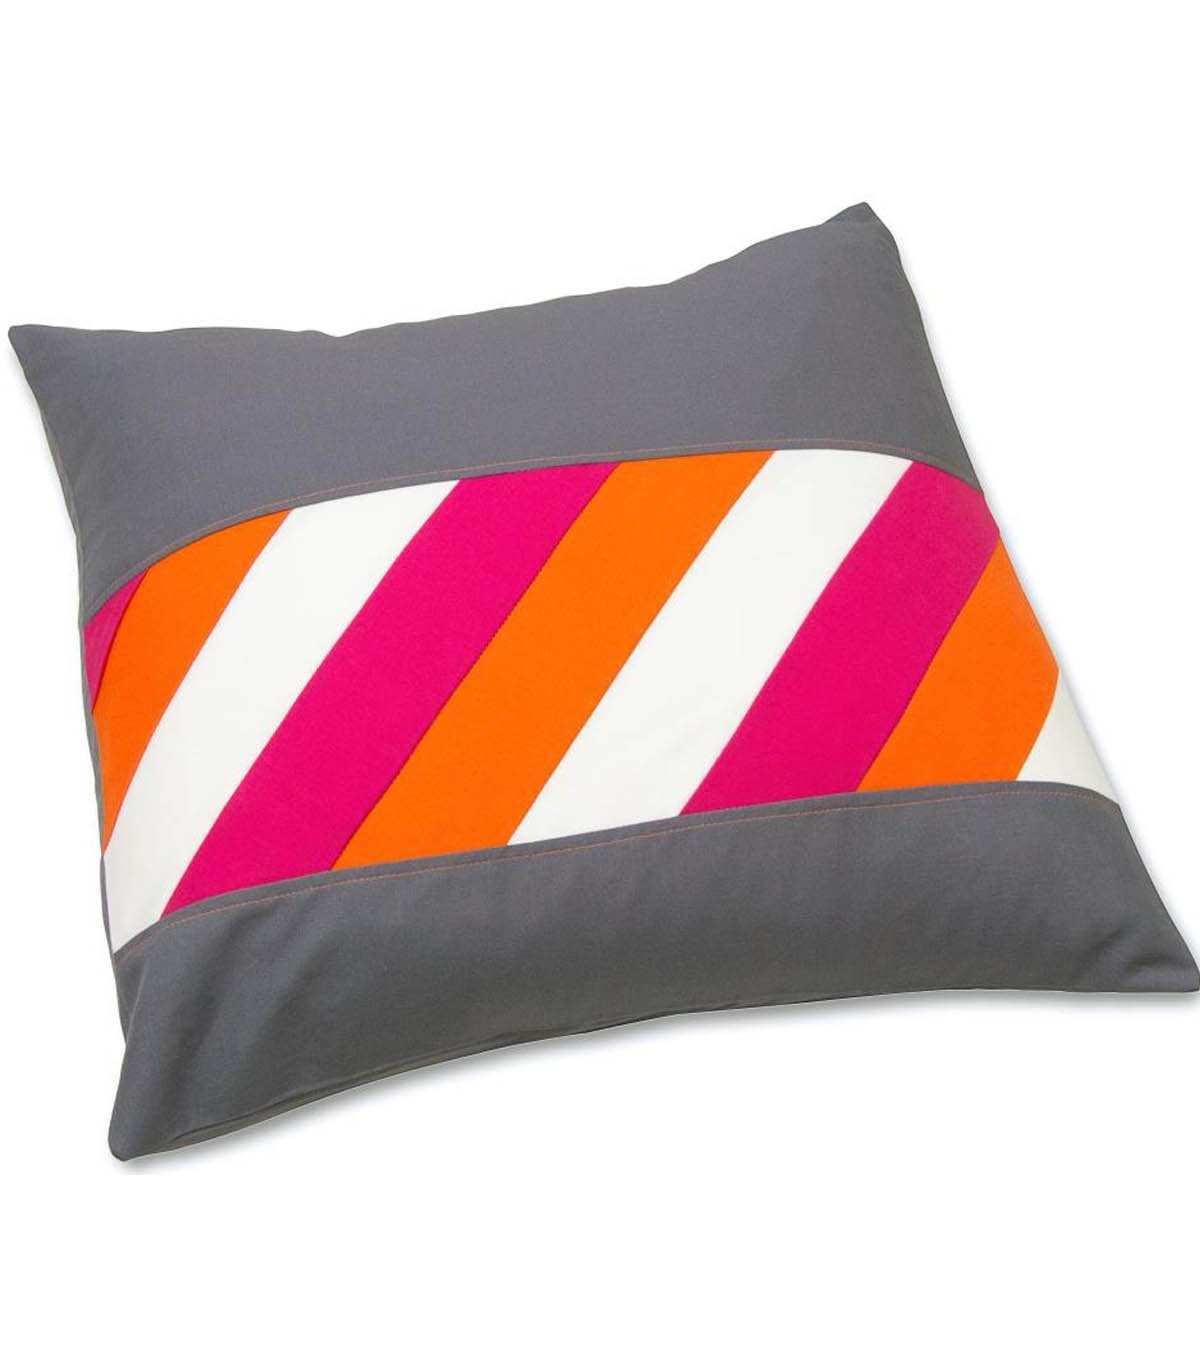 Kona Block Pillow